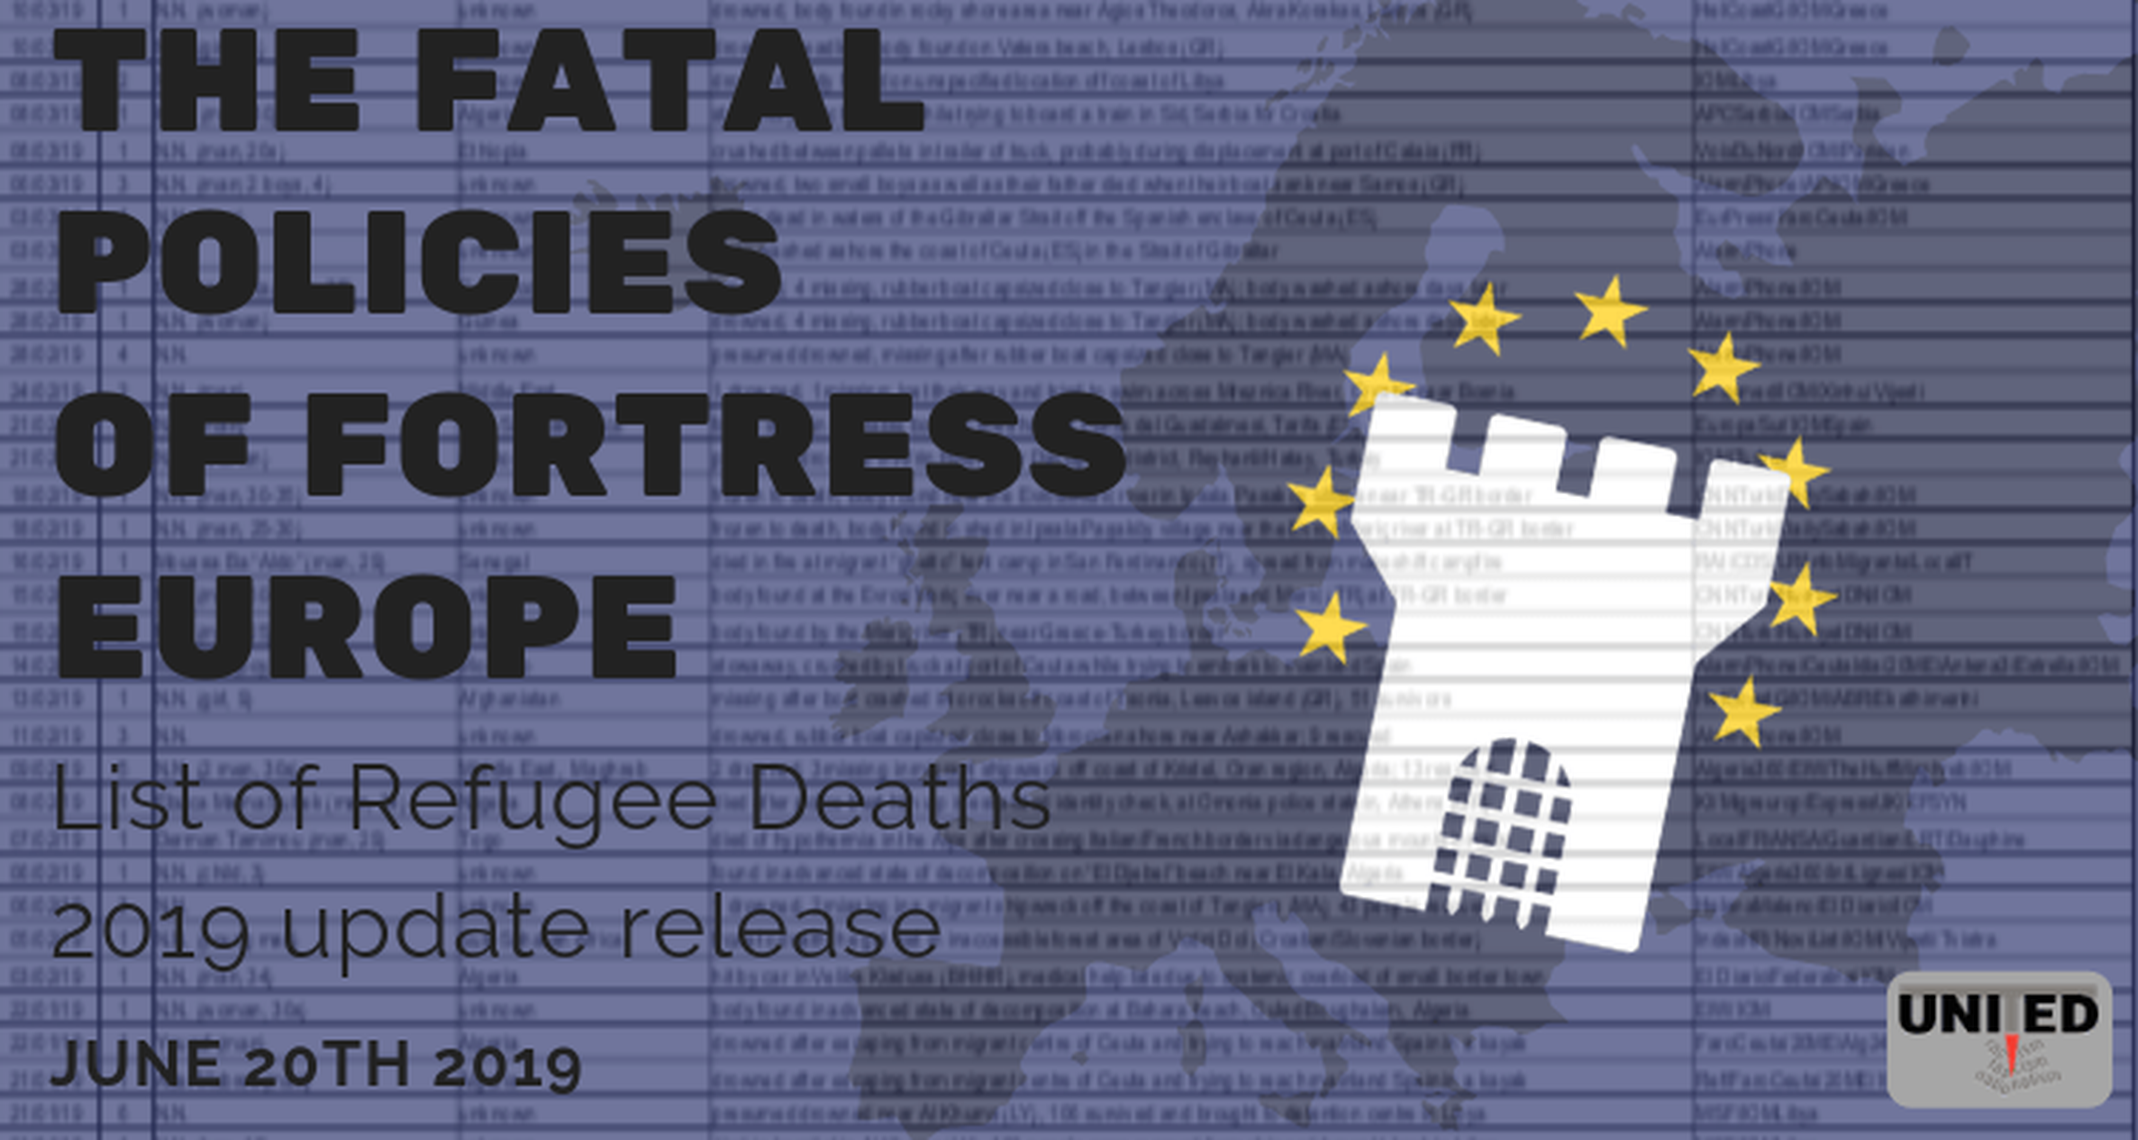 The fatal policies of fortress europe - united website